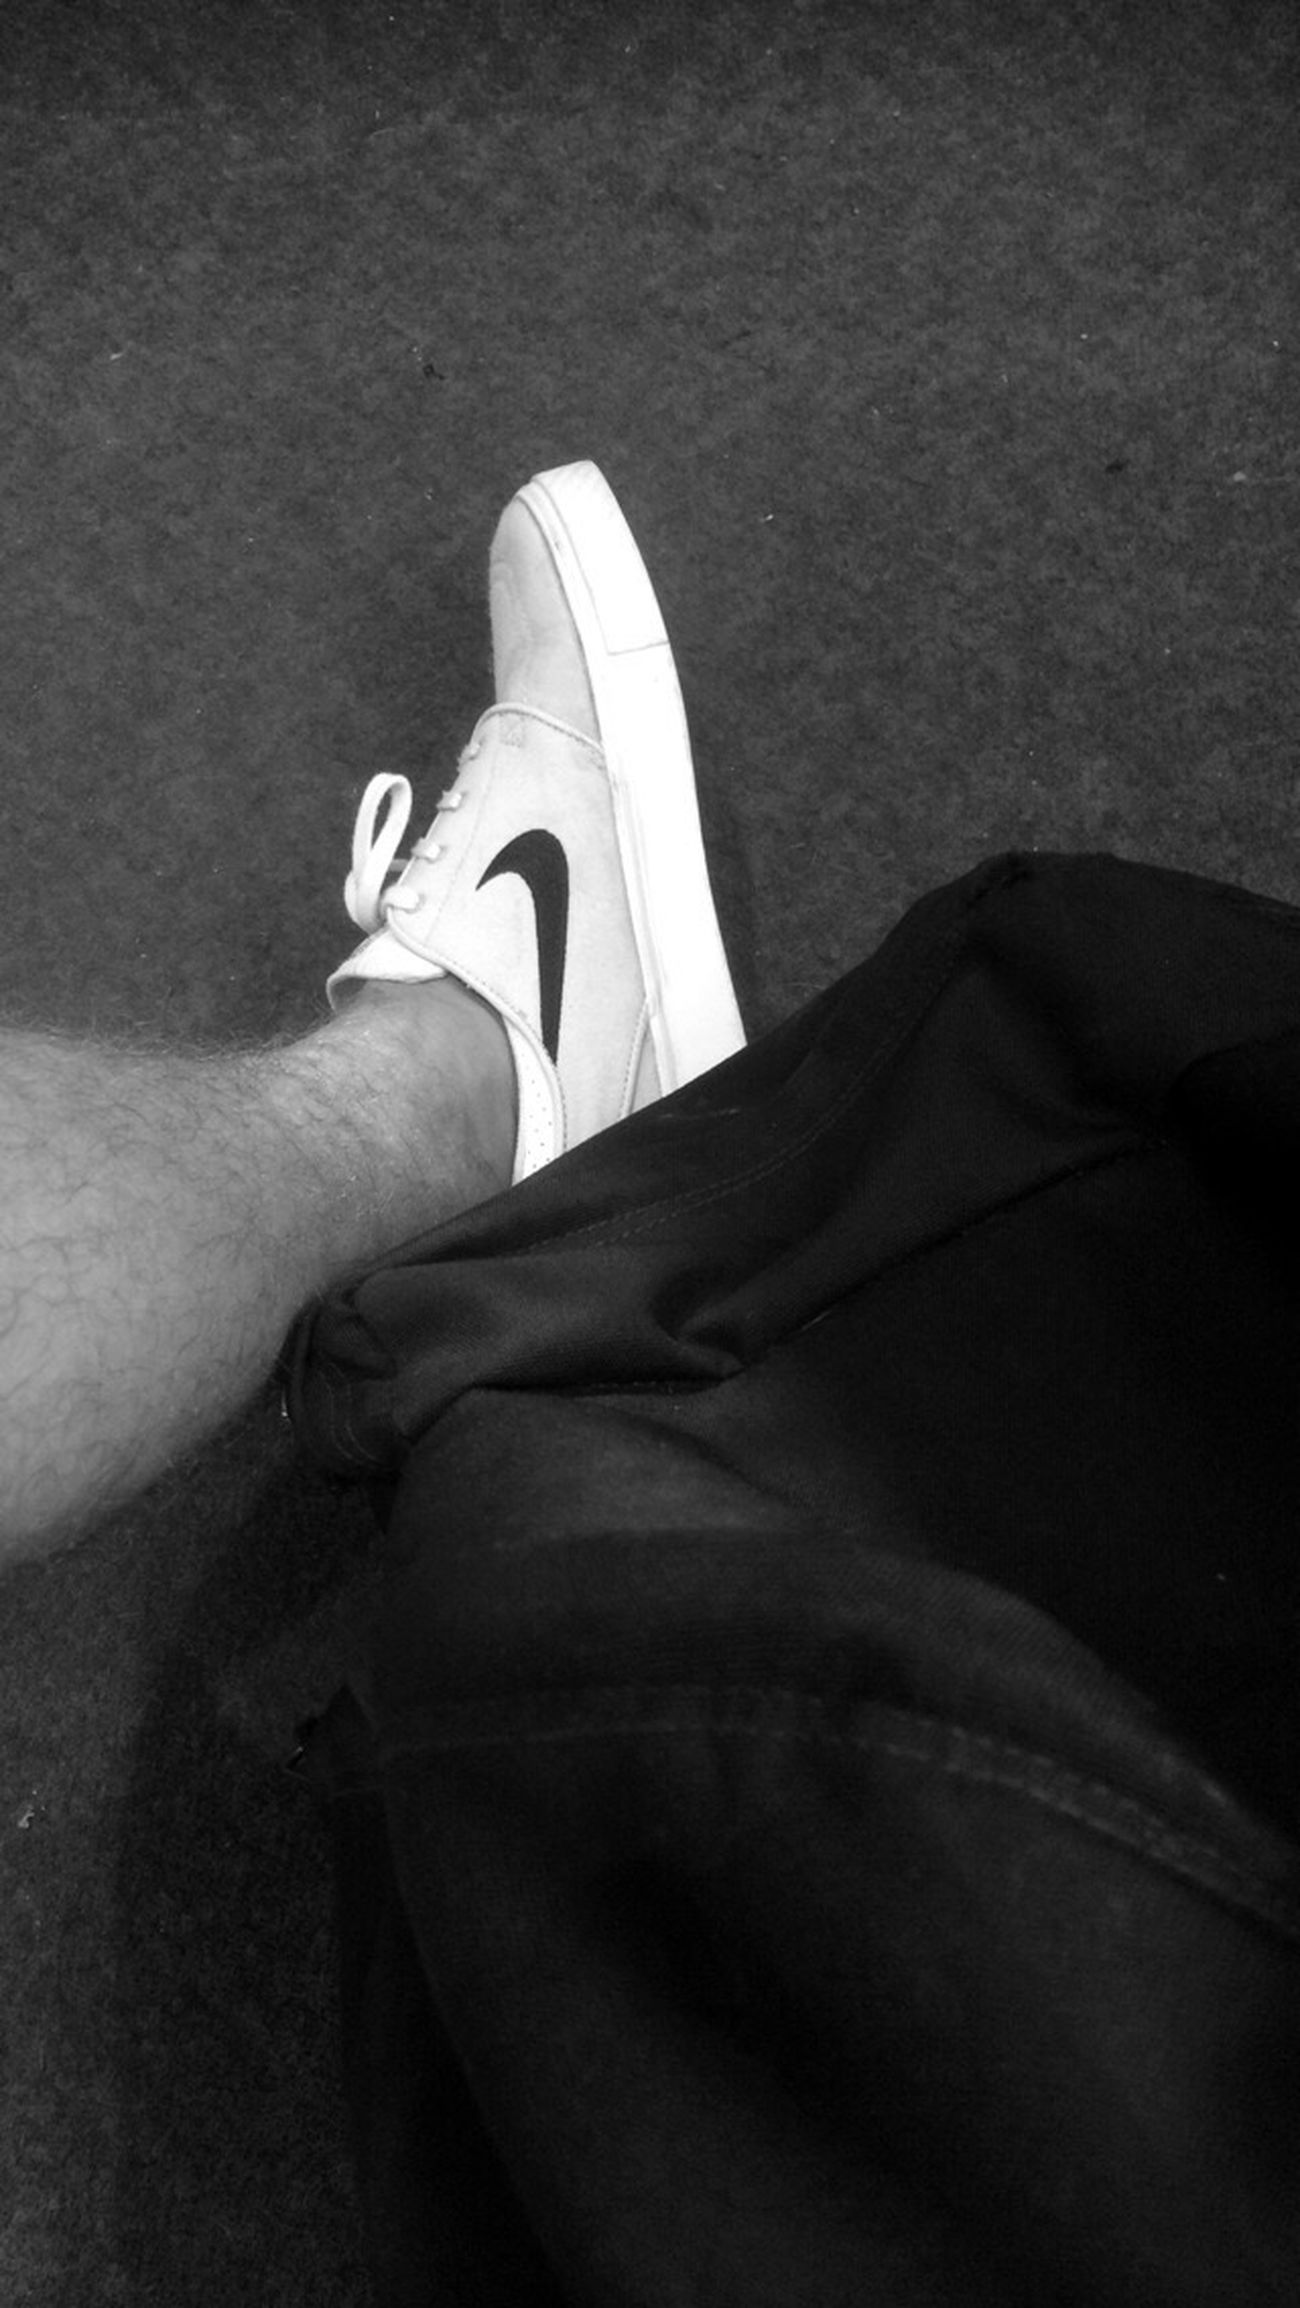 Just do it Sneakers Nike Black And White